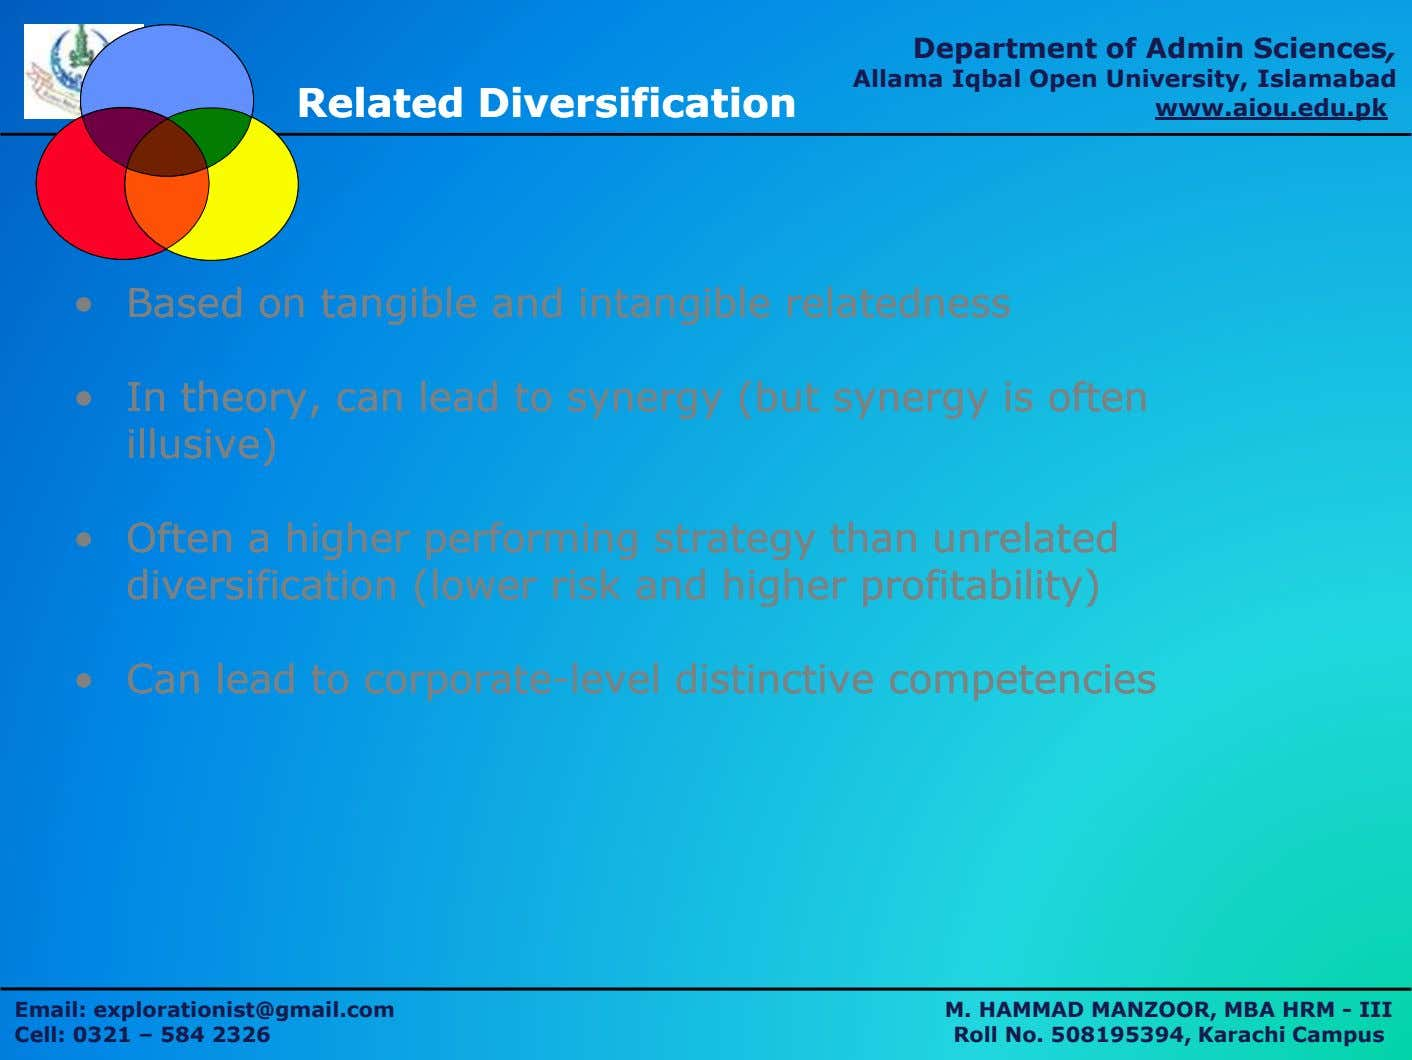 Department of Admin Sciences, RelatedRelated DiversificationDiversification Allama Iqbal Open University, Islamabad